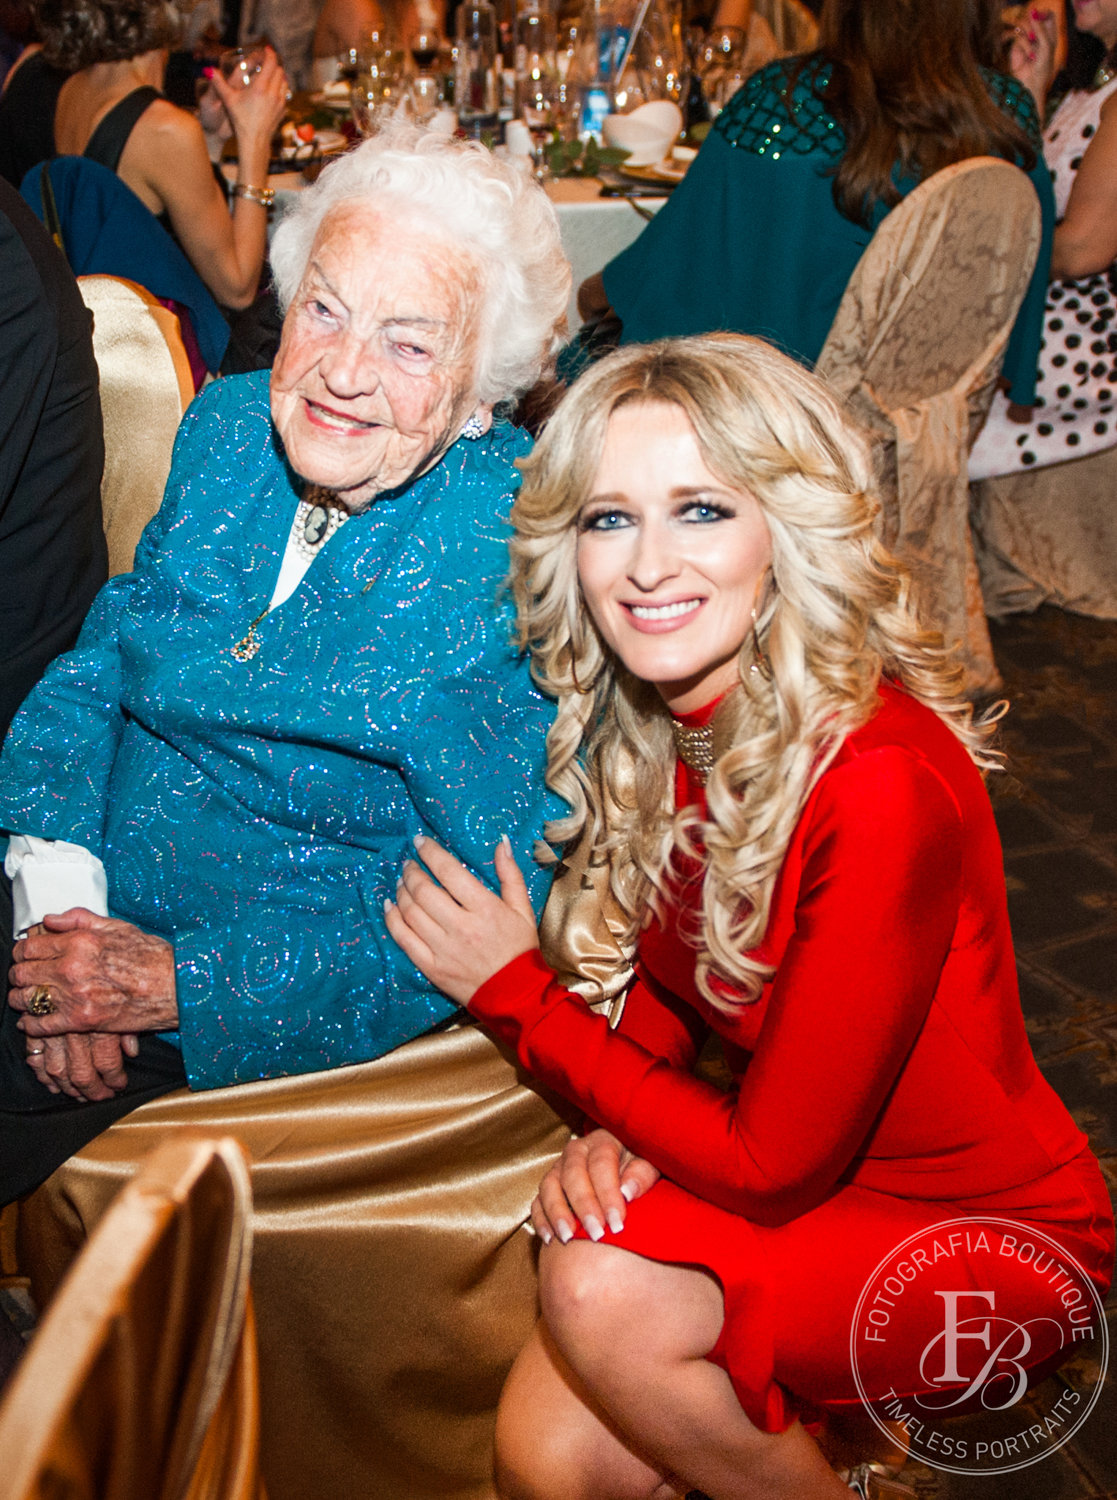 Hazel McCallion and Maggie Habieda of Fotografia Boutique at MARTYs 10 May 2018 image from Maggie Habieda Email Fotografia Boutique infoatfotografiaboutique.ca 29May2018 2:36pm